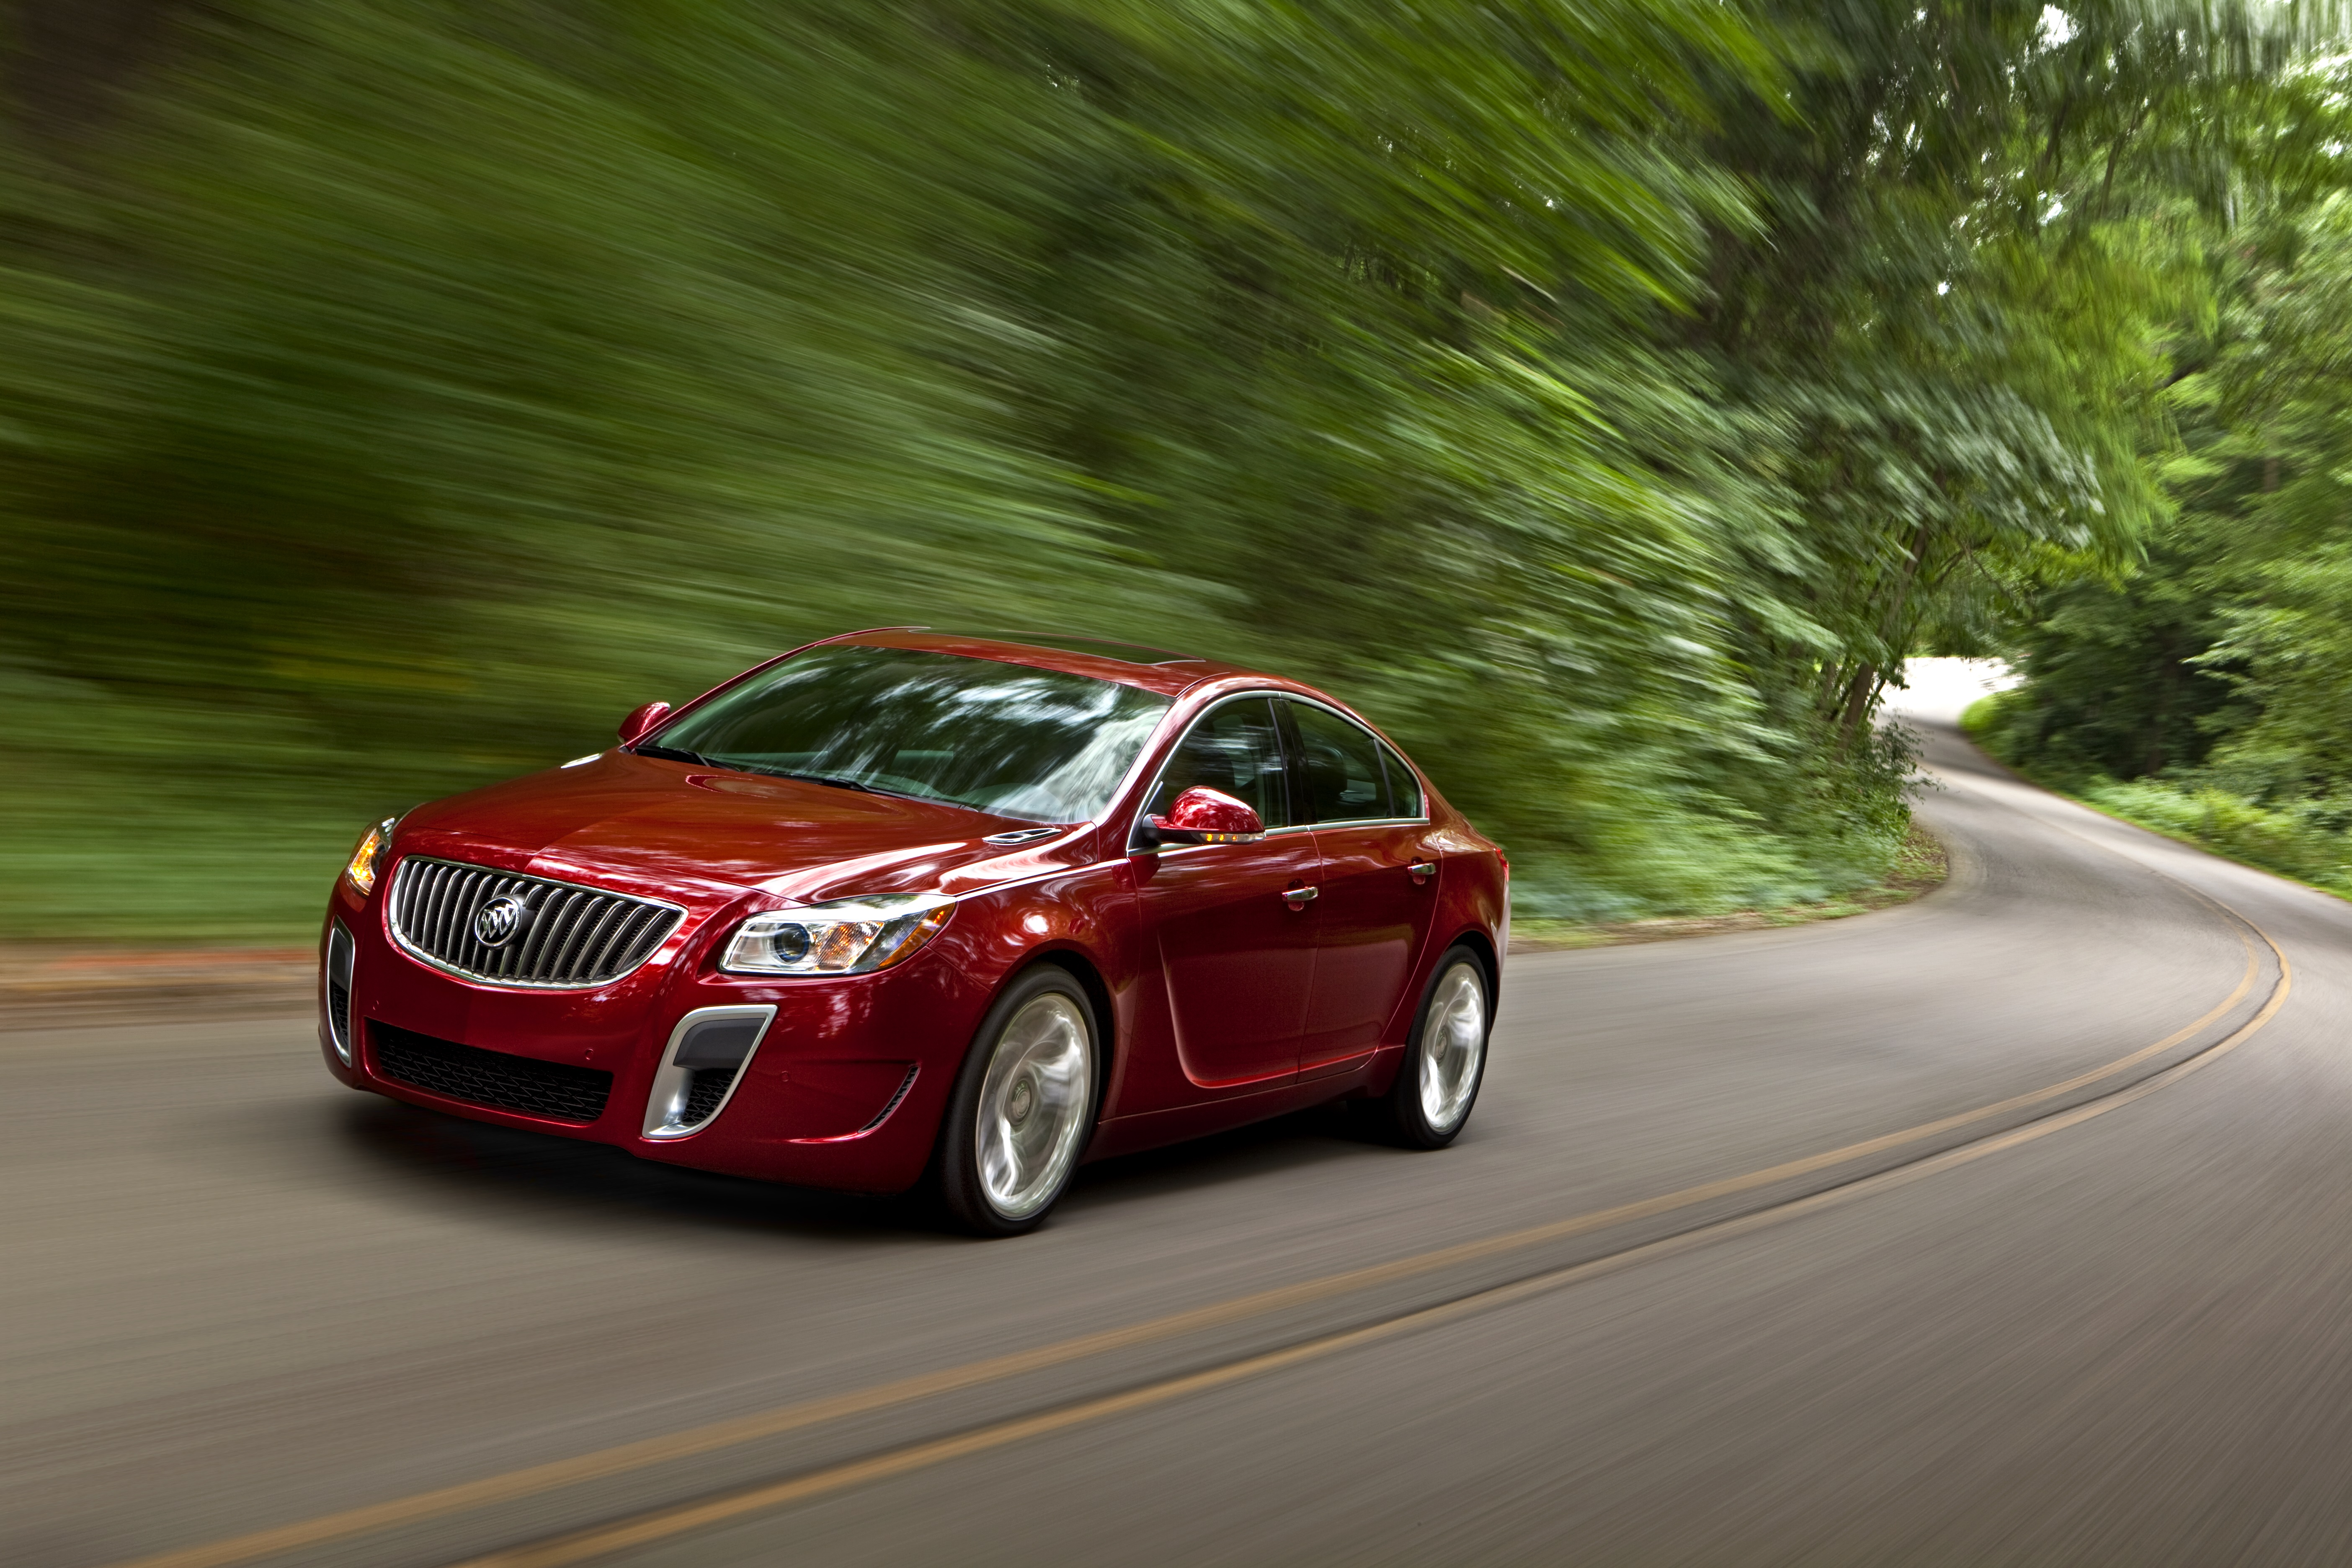 buick review verano wheel of luxury a wrapped touch redlinenorth steering regal adds turbo leather heated